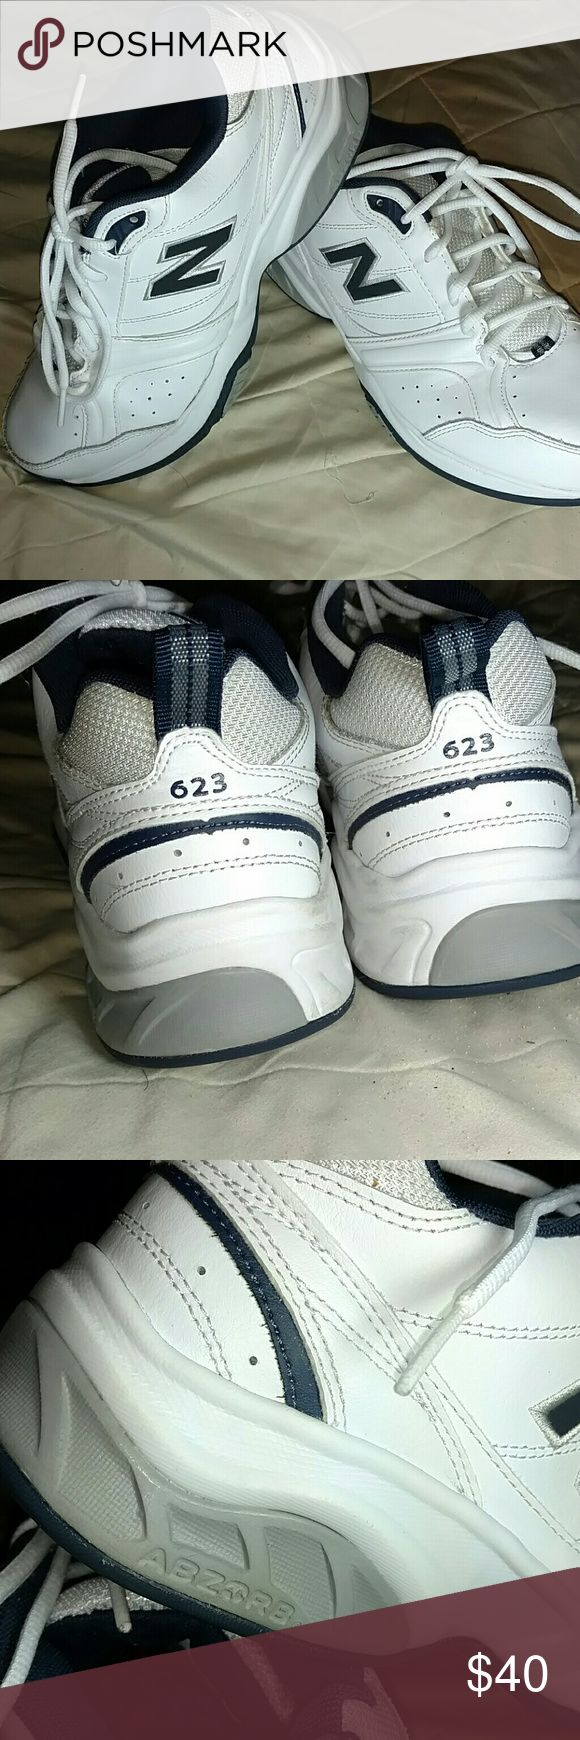 New Balance Men's 623 v3 Cross Trainers Excellent condition, worn a few times. Color Navy and White. Comes from a smoke free and pet free home.   ABZORB? cushioning Technology Leather  Uppers Quiz traction Outsole Eva foam midsole. New Balance Shoes Sneakers